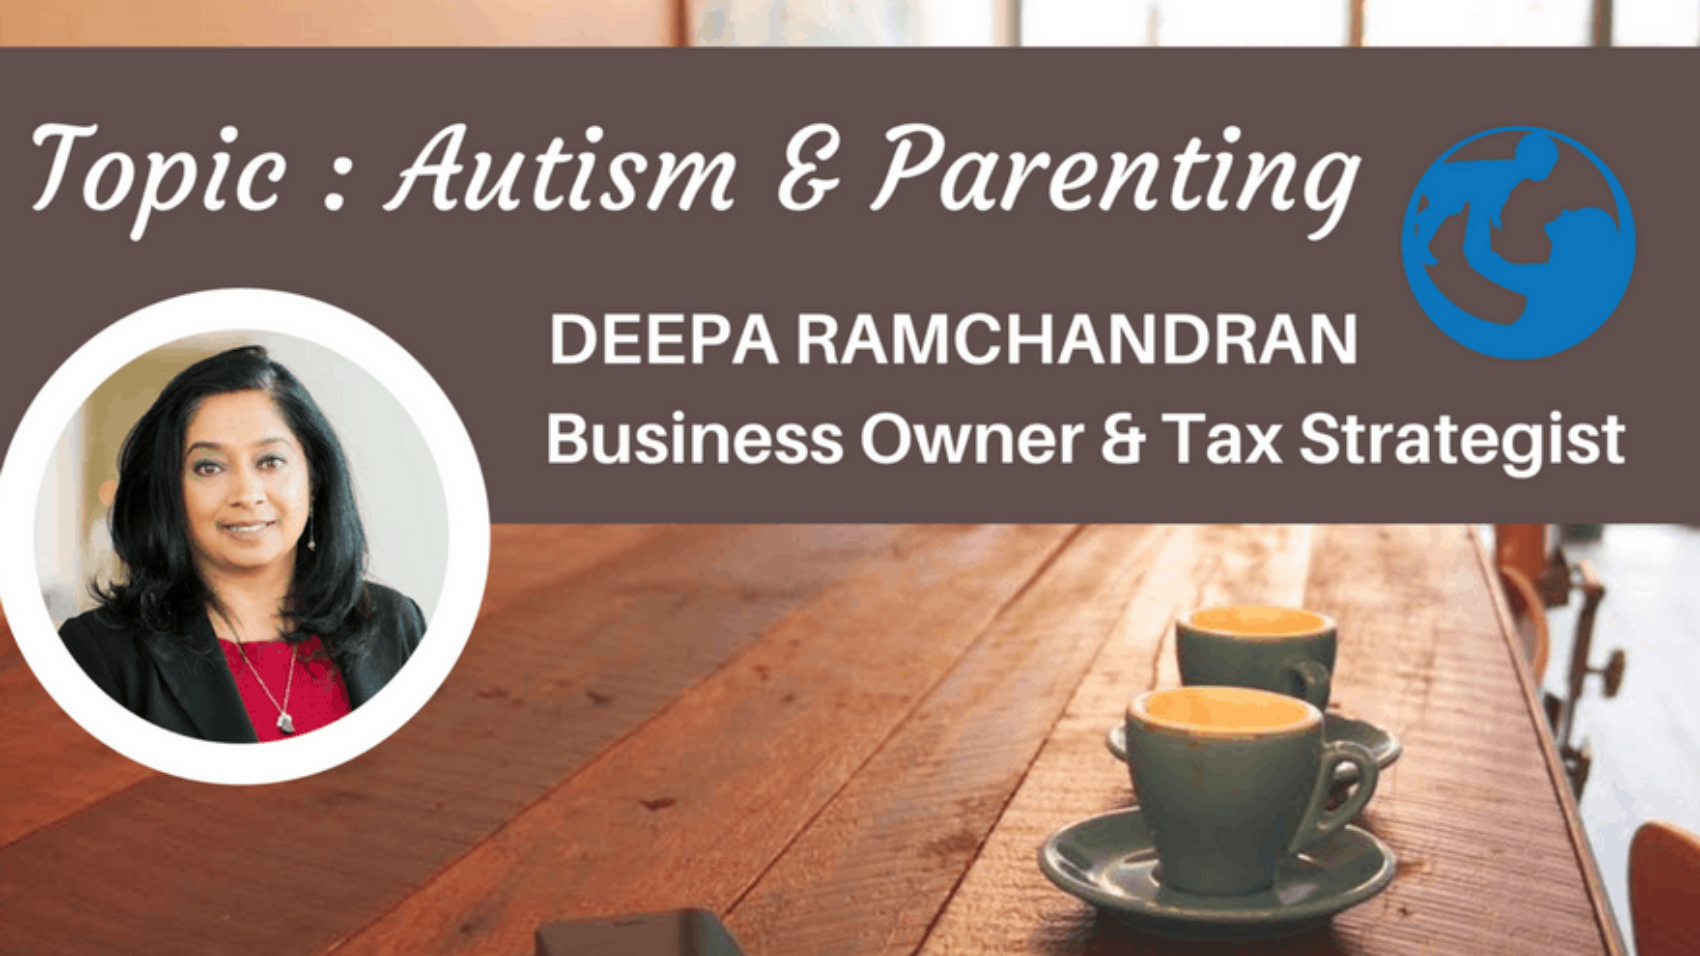 World of Parenting with Autism